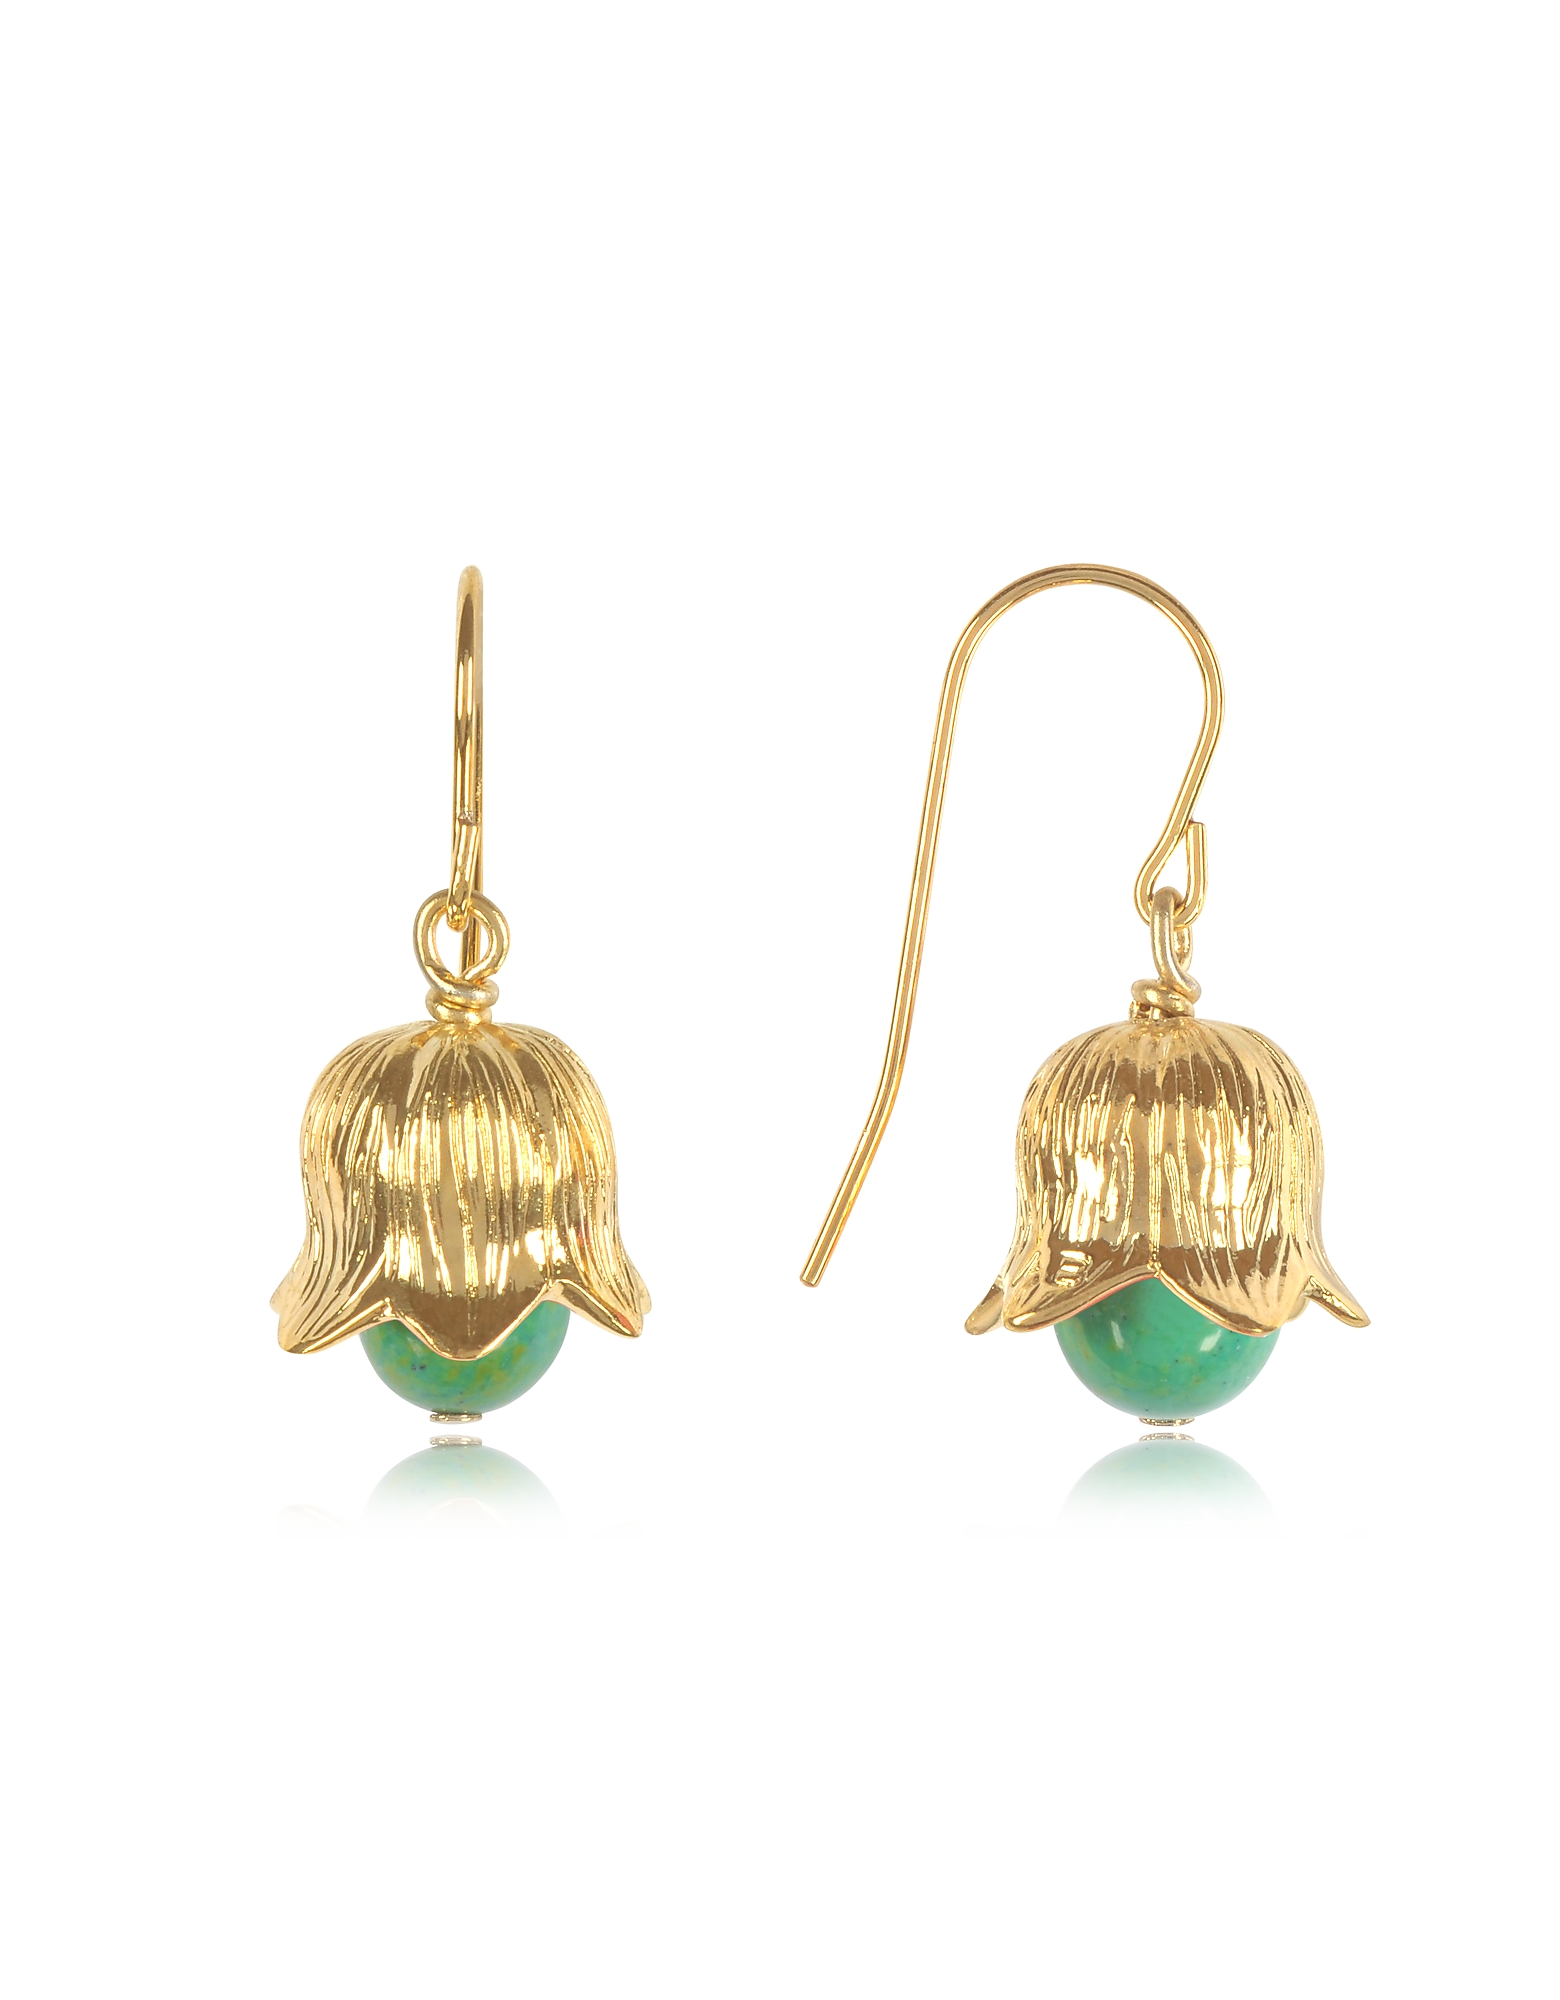 Aurelie Bidermann Earrings, 18K gold-plated Lily of the Valley Earrings w/Turquoise